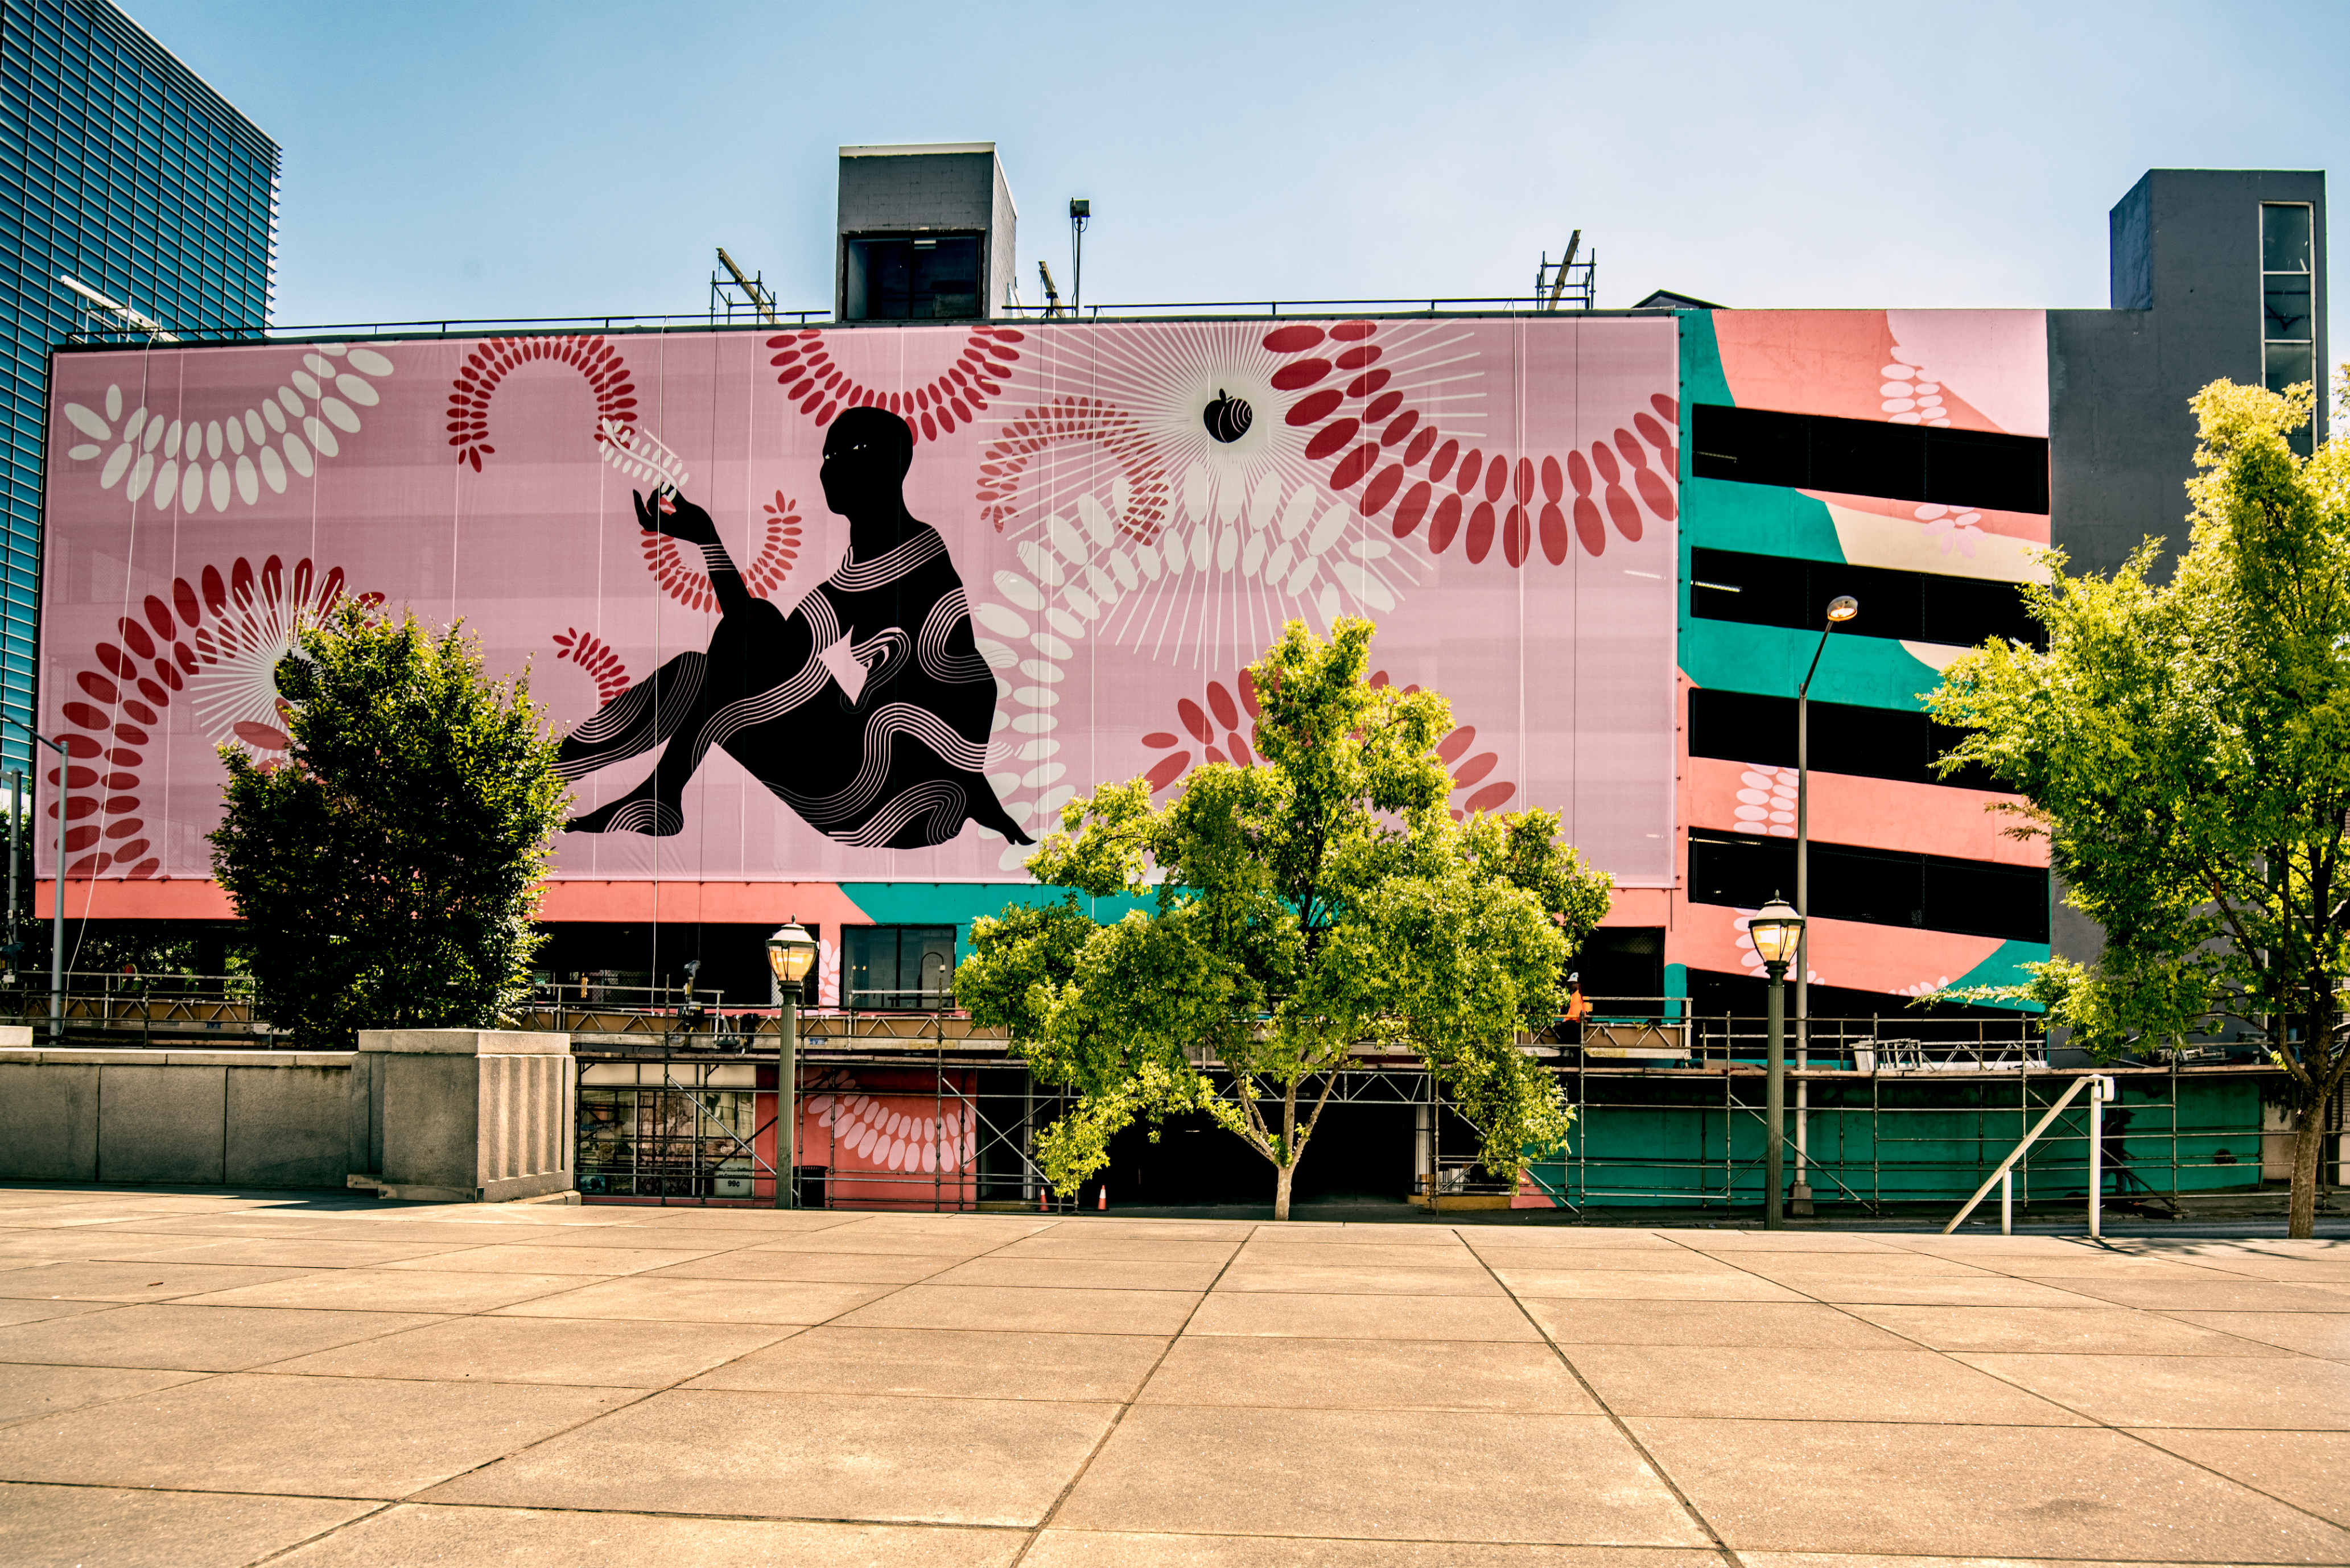 Mural of shadow figure with pink background.